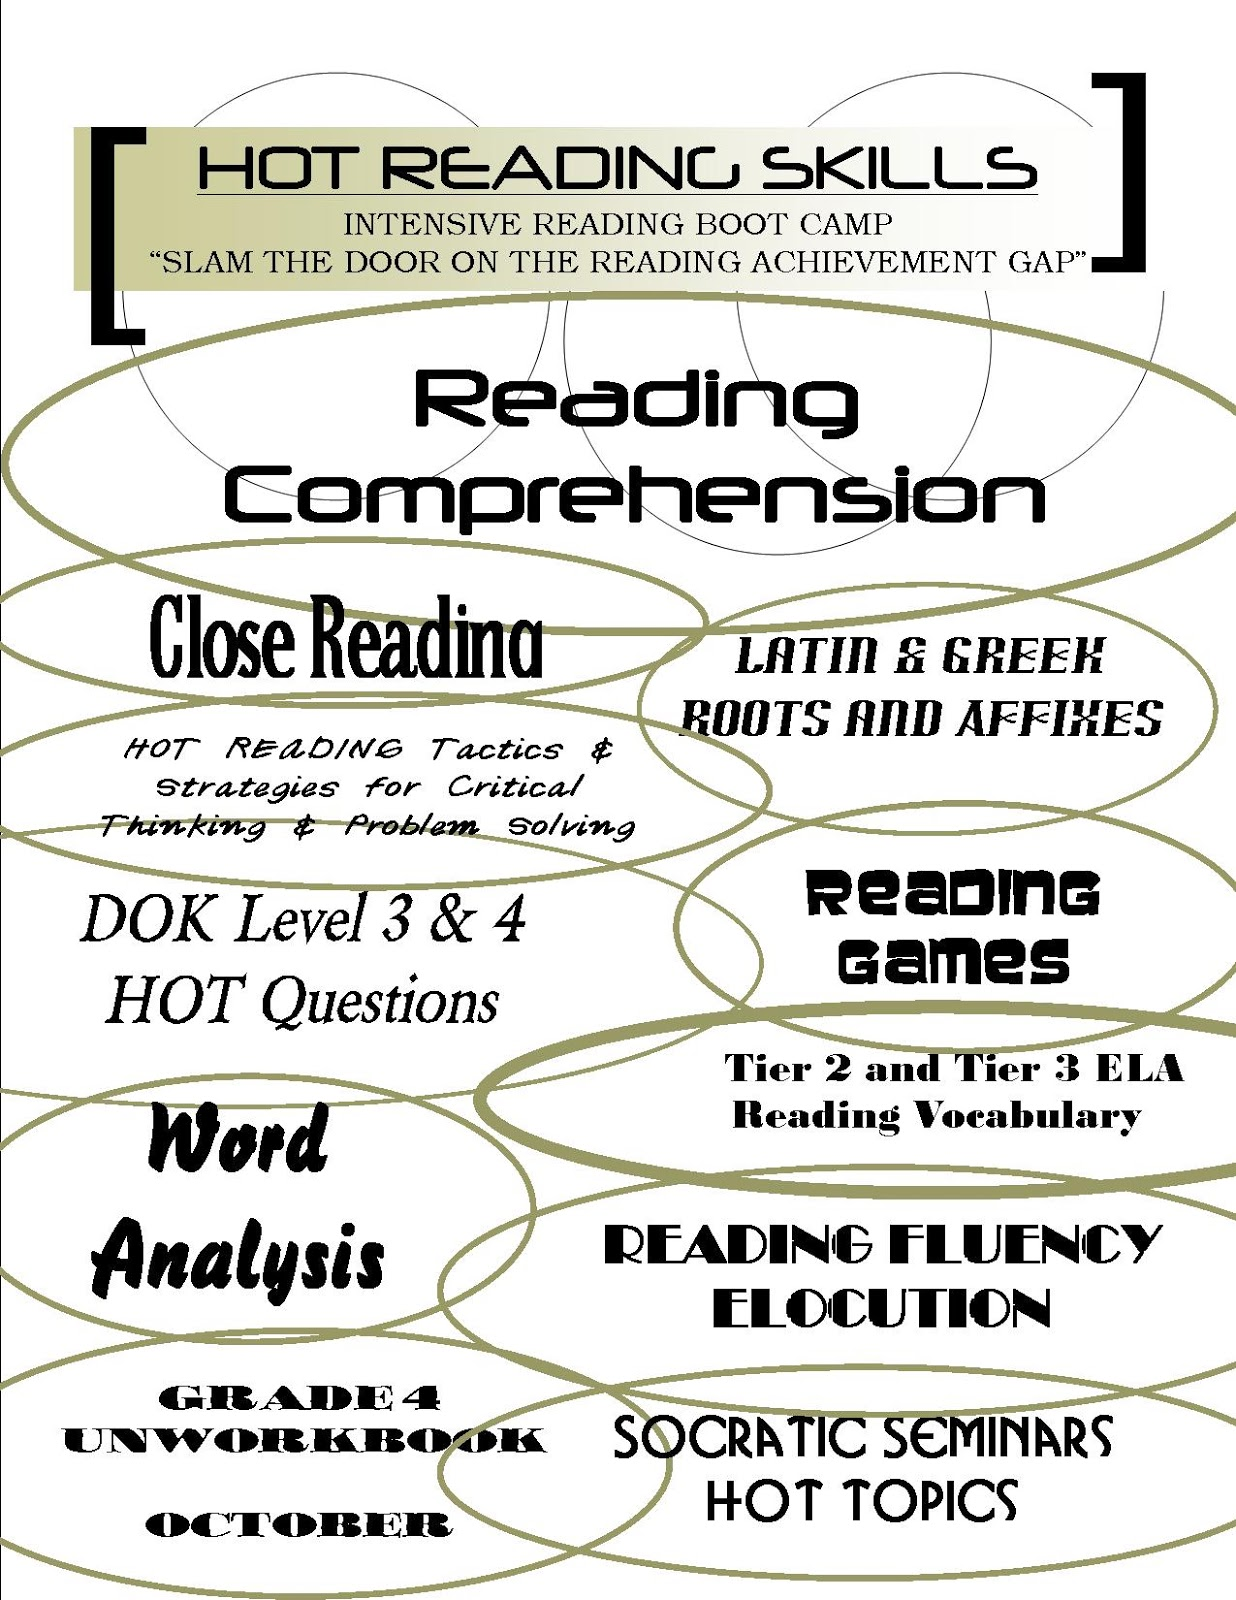 Worksheet 4th Grade Reading Comprehension Questions reading sage close passages free prepare your students with intensive dok level 3 and 4 two step comprehension questions targeted word study rigorous analysis